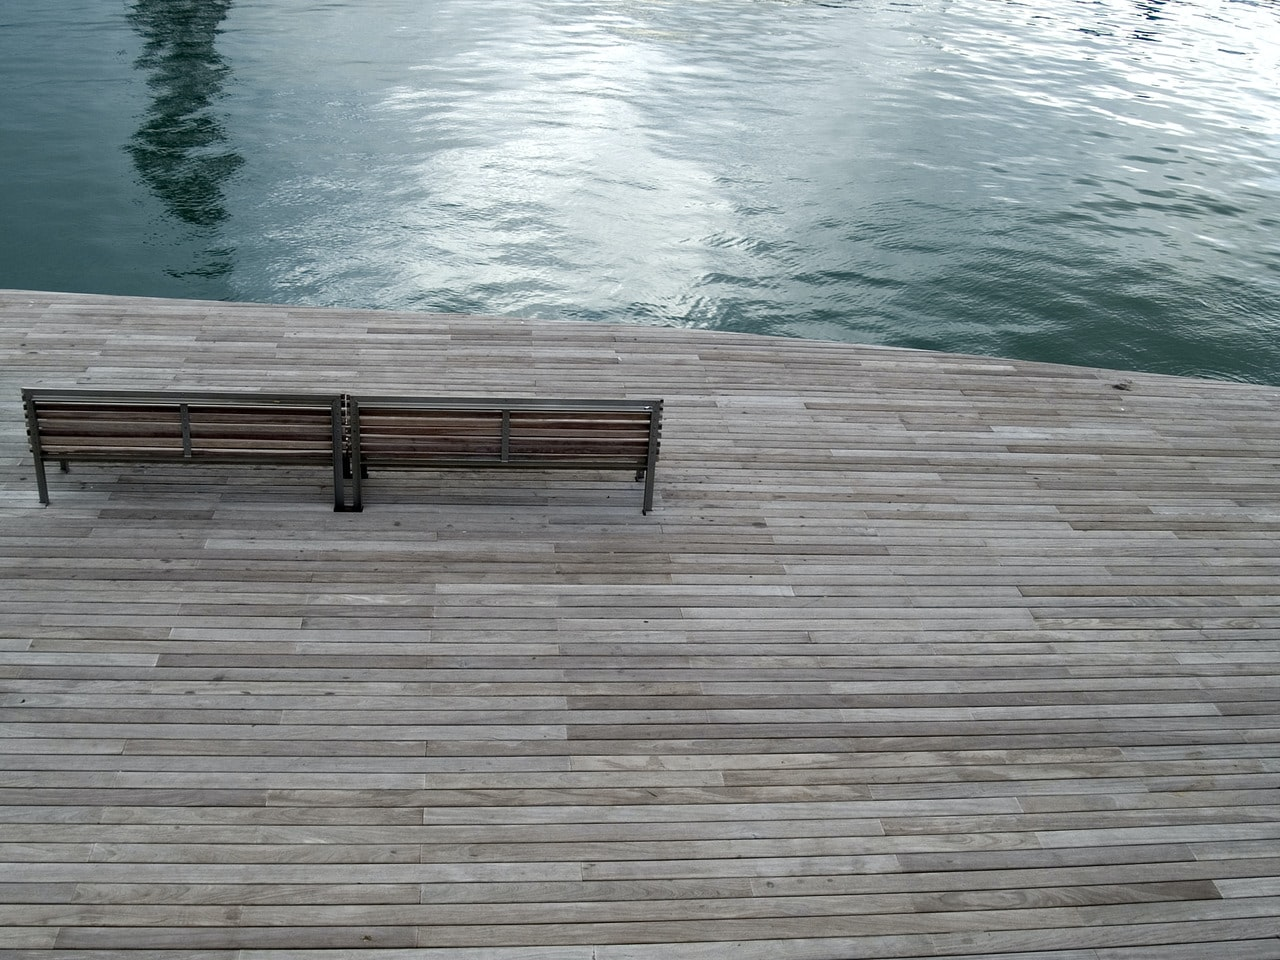 aerial photography of bench near body of water